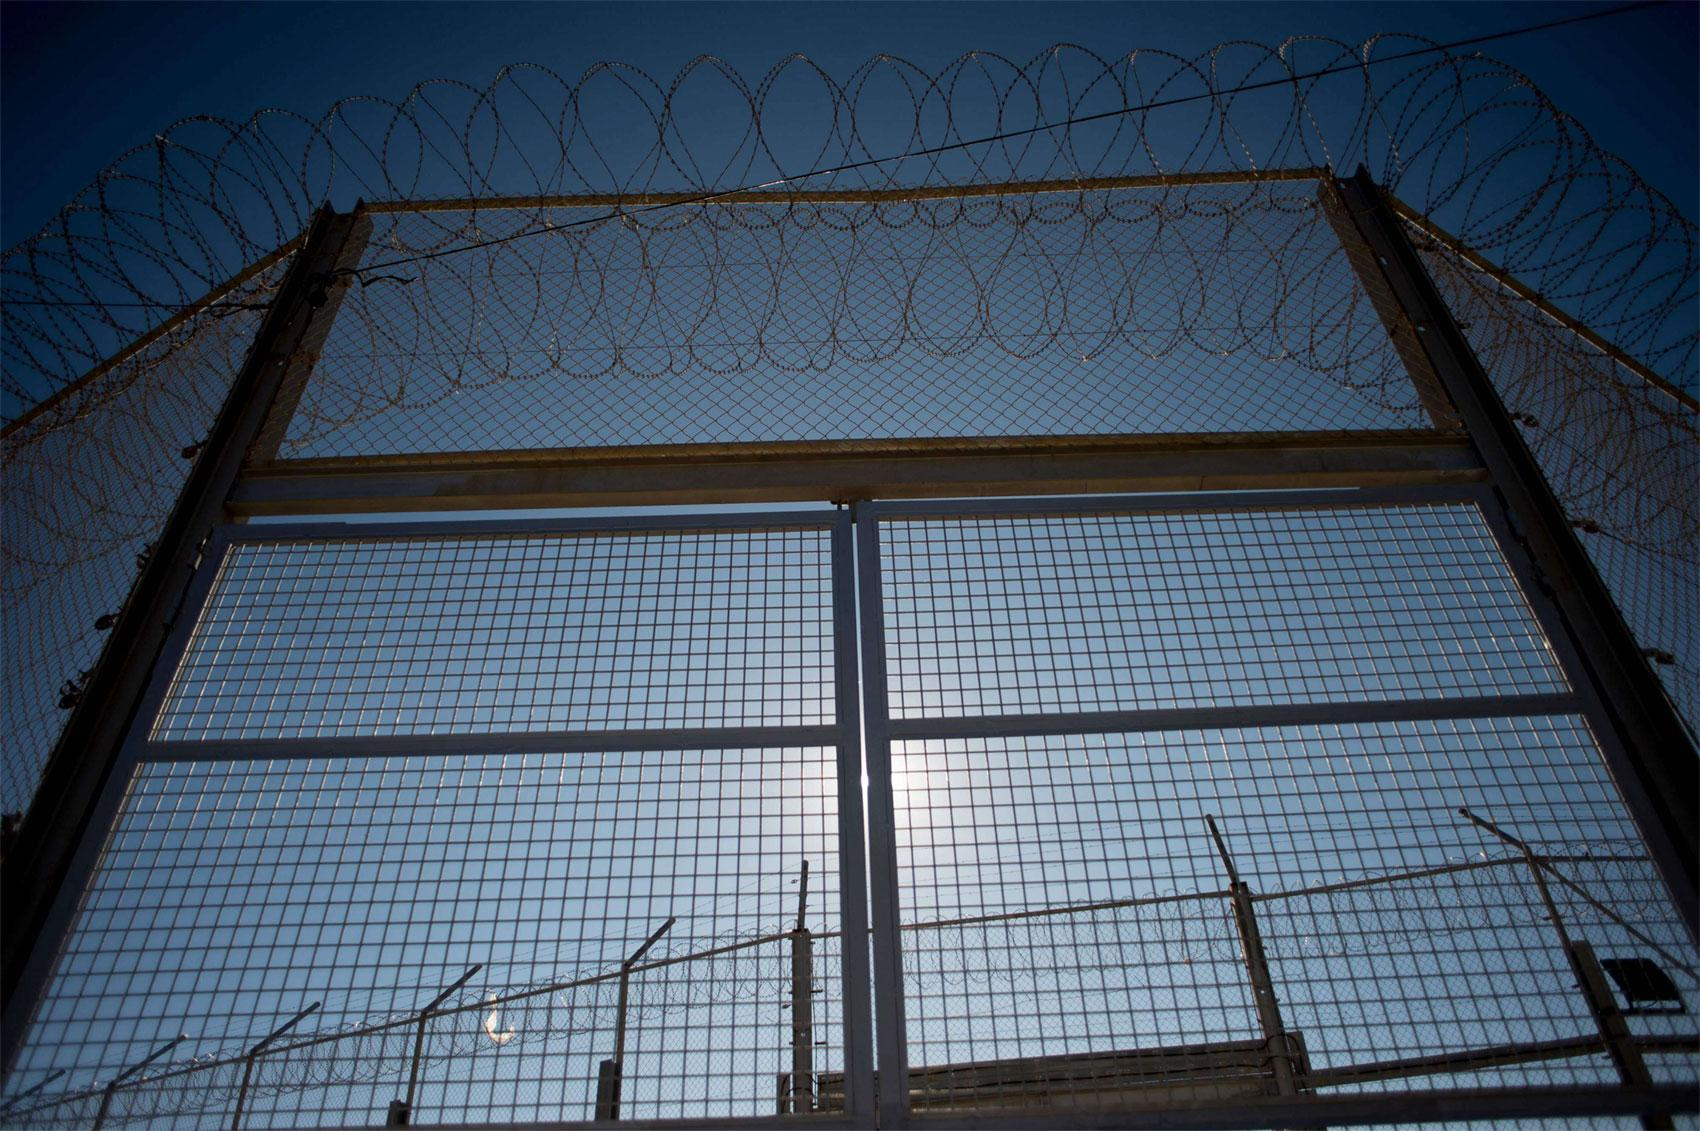 Spain wants to remove barbed wire from border fences at enclaves   MEO